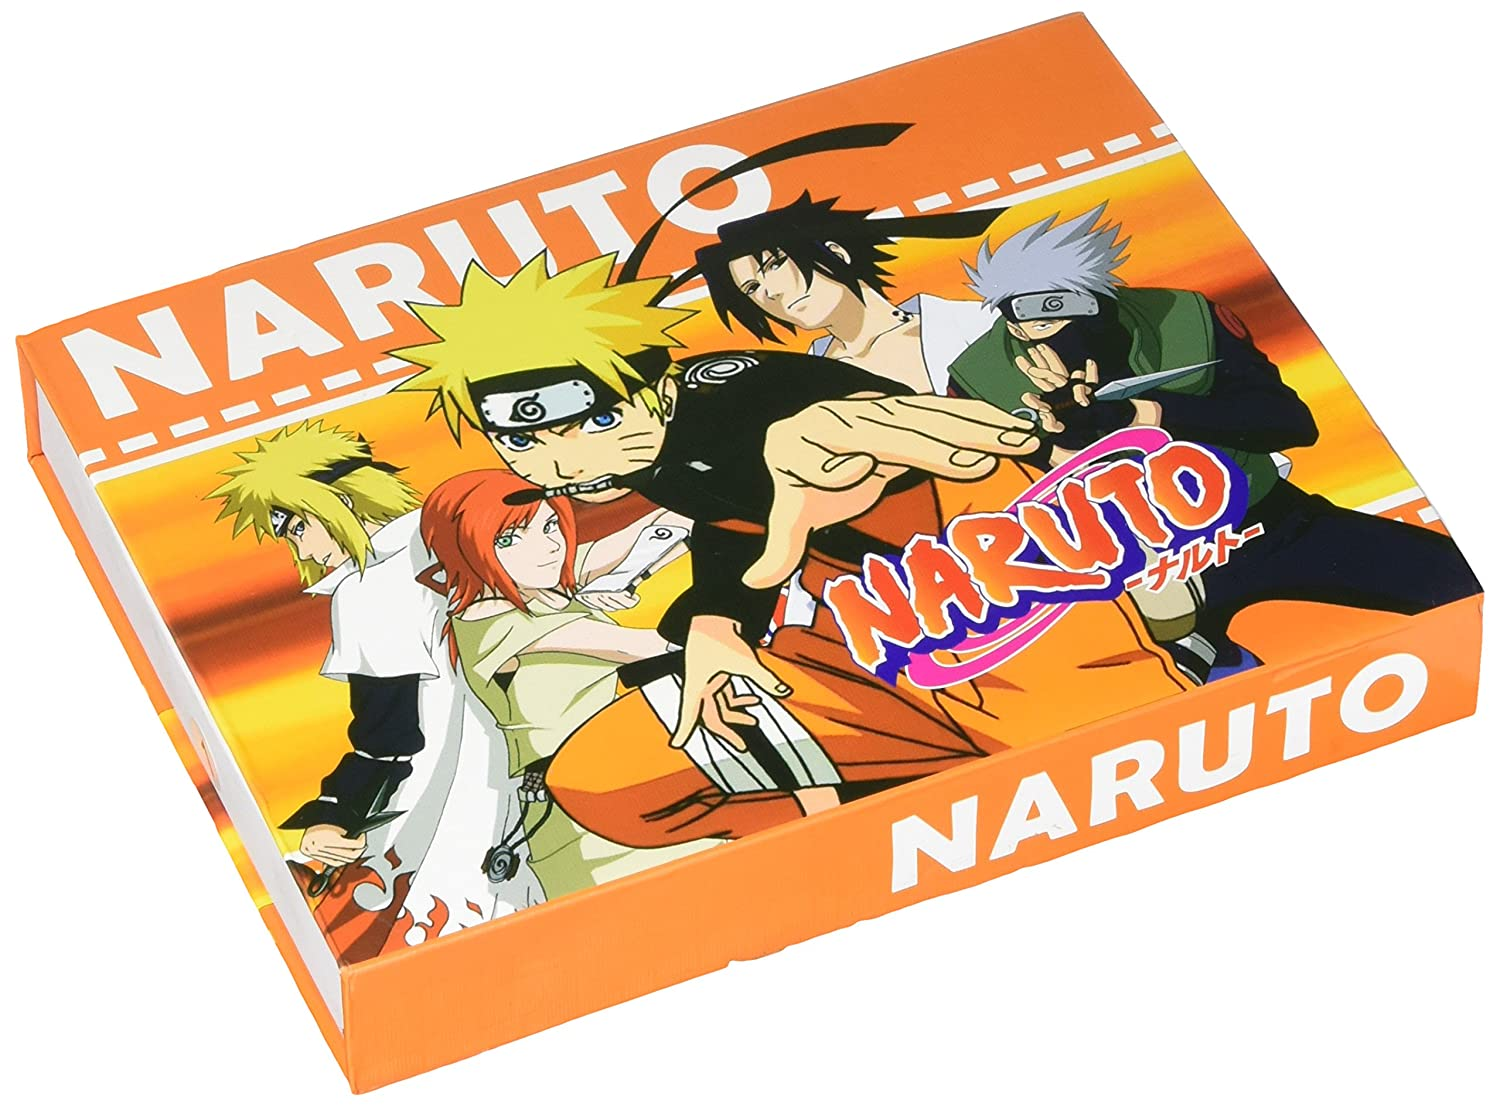 Amazon.com: Arma Anime Naruto cosplay modelo metal espada ...